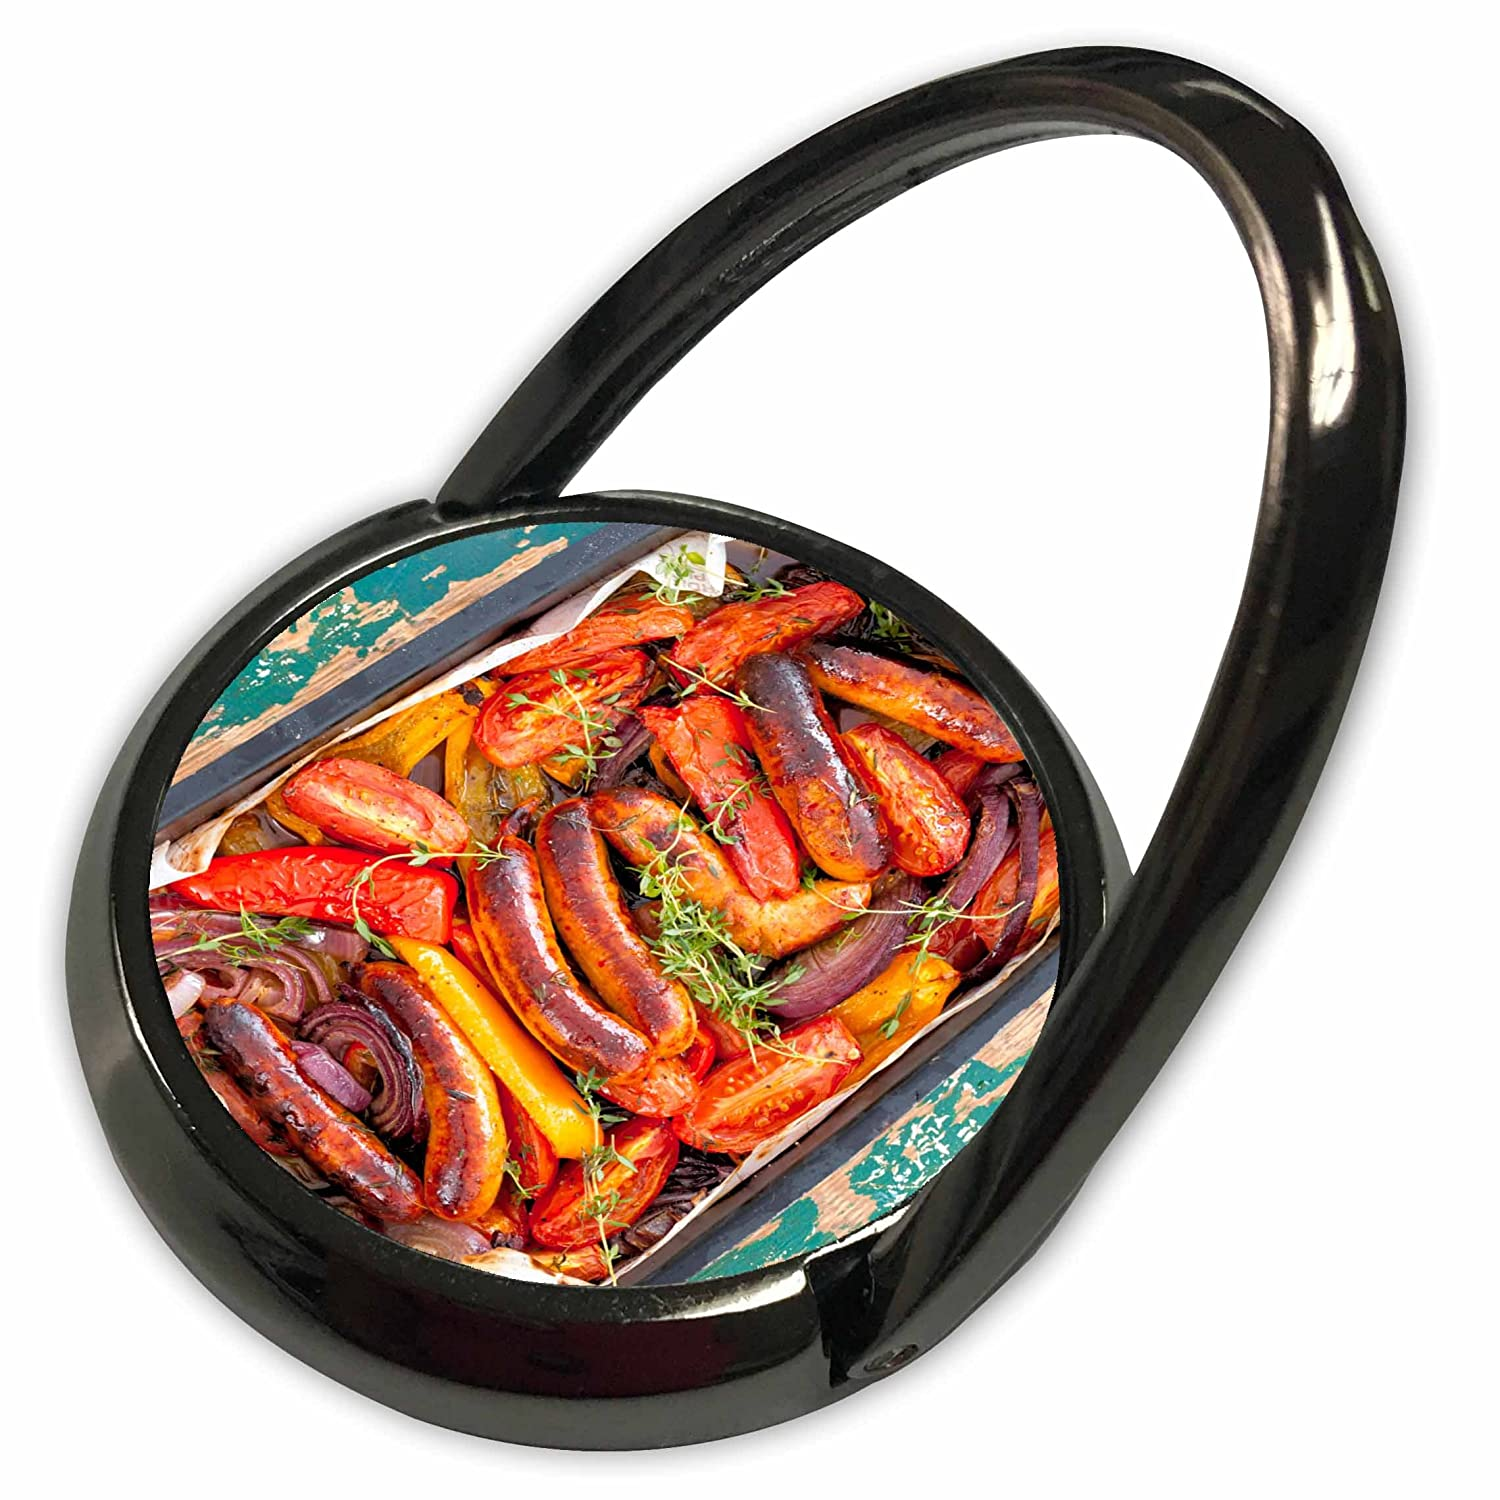 3dRose Danita Delimont - Food - Oven-roasted sausages, South Africa. - Phone Ring (phr_208611_1)